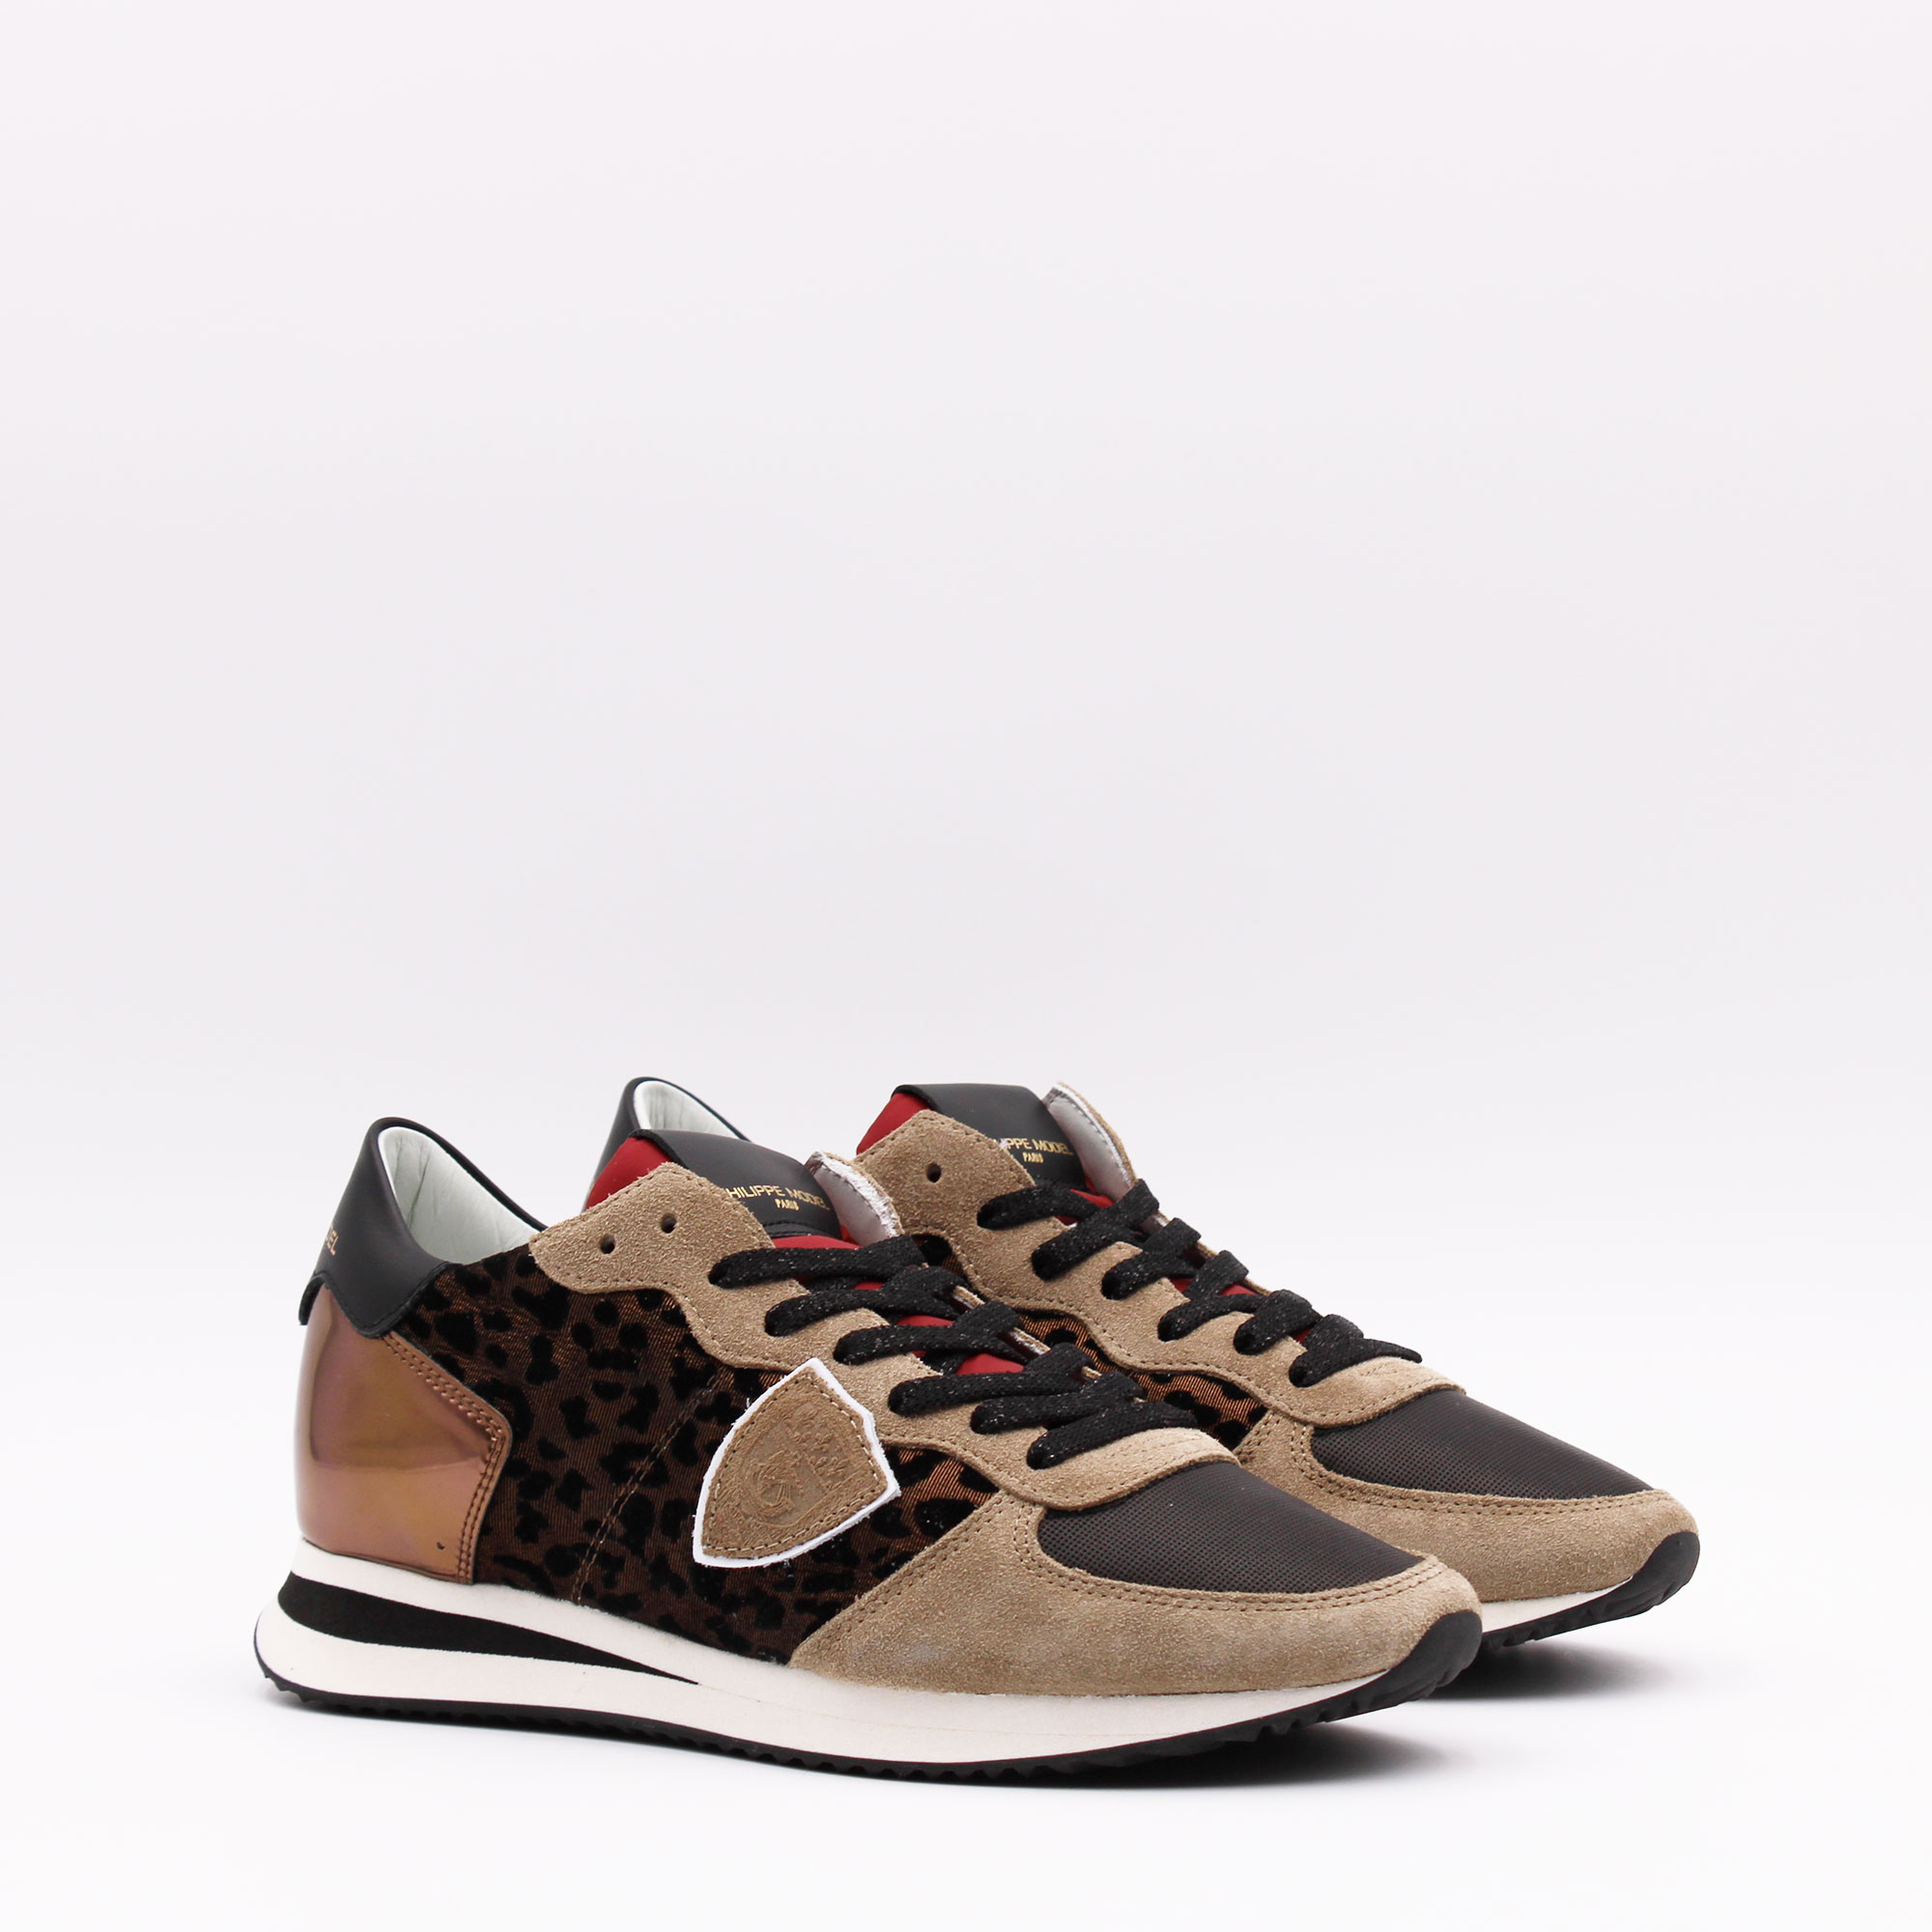 NEW COLLECTION- Trpx leo flock- Bronzo